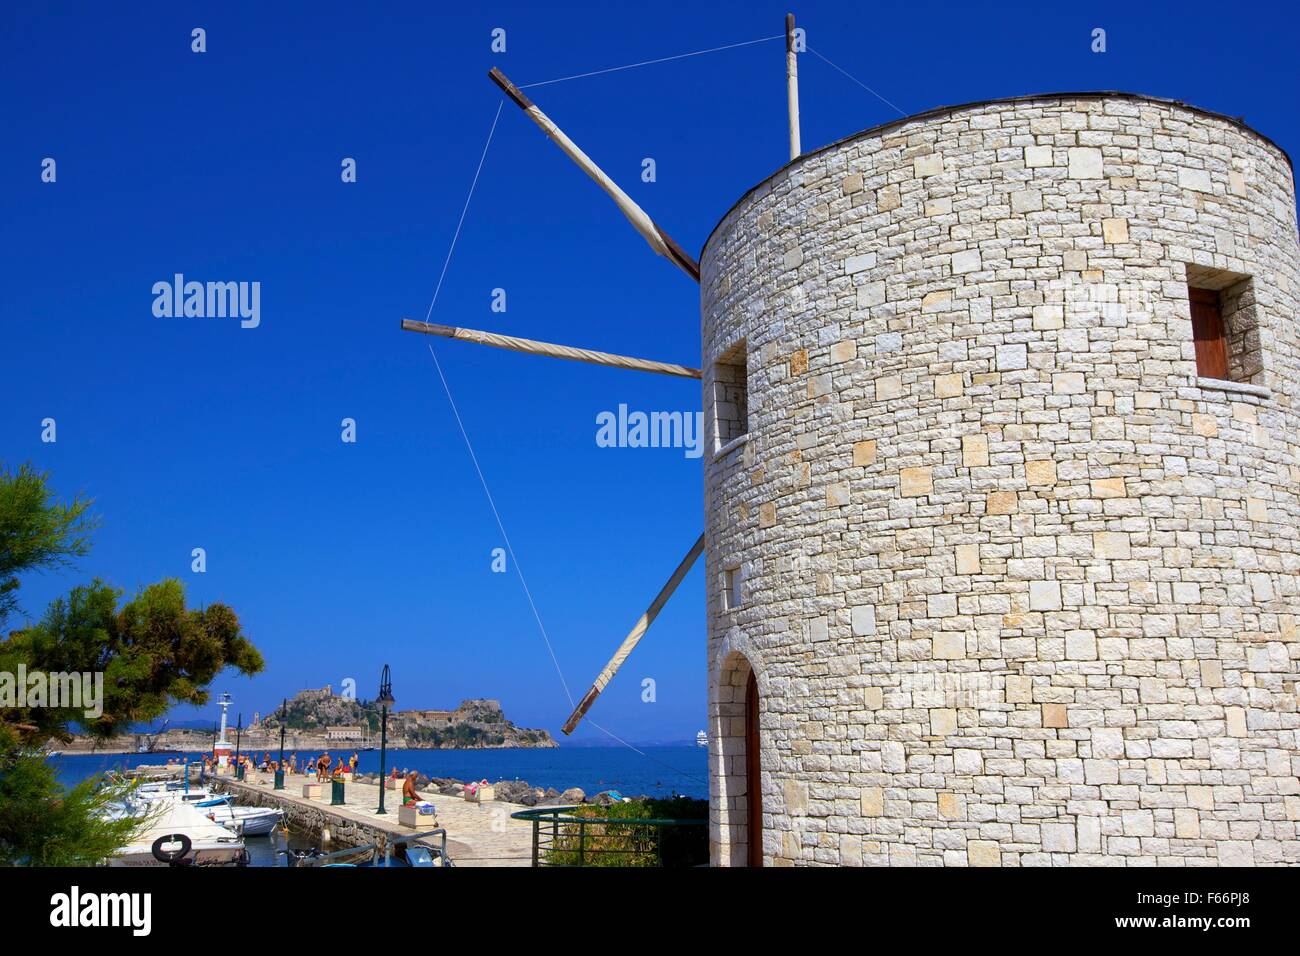 Windmill At Mon Repos Beach, Corfu Town, Corfu, The Ionian Islands, Greek Islands, Greece, Europe - Stock Image